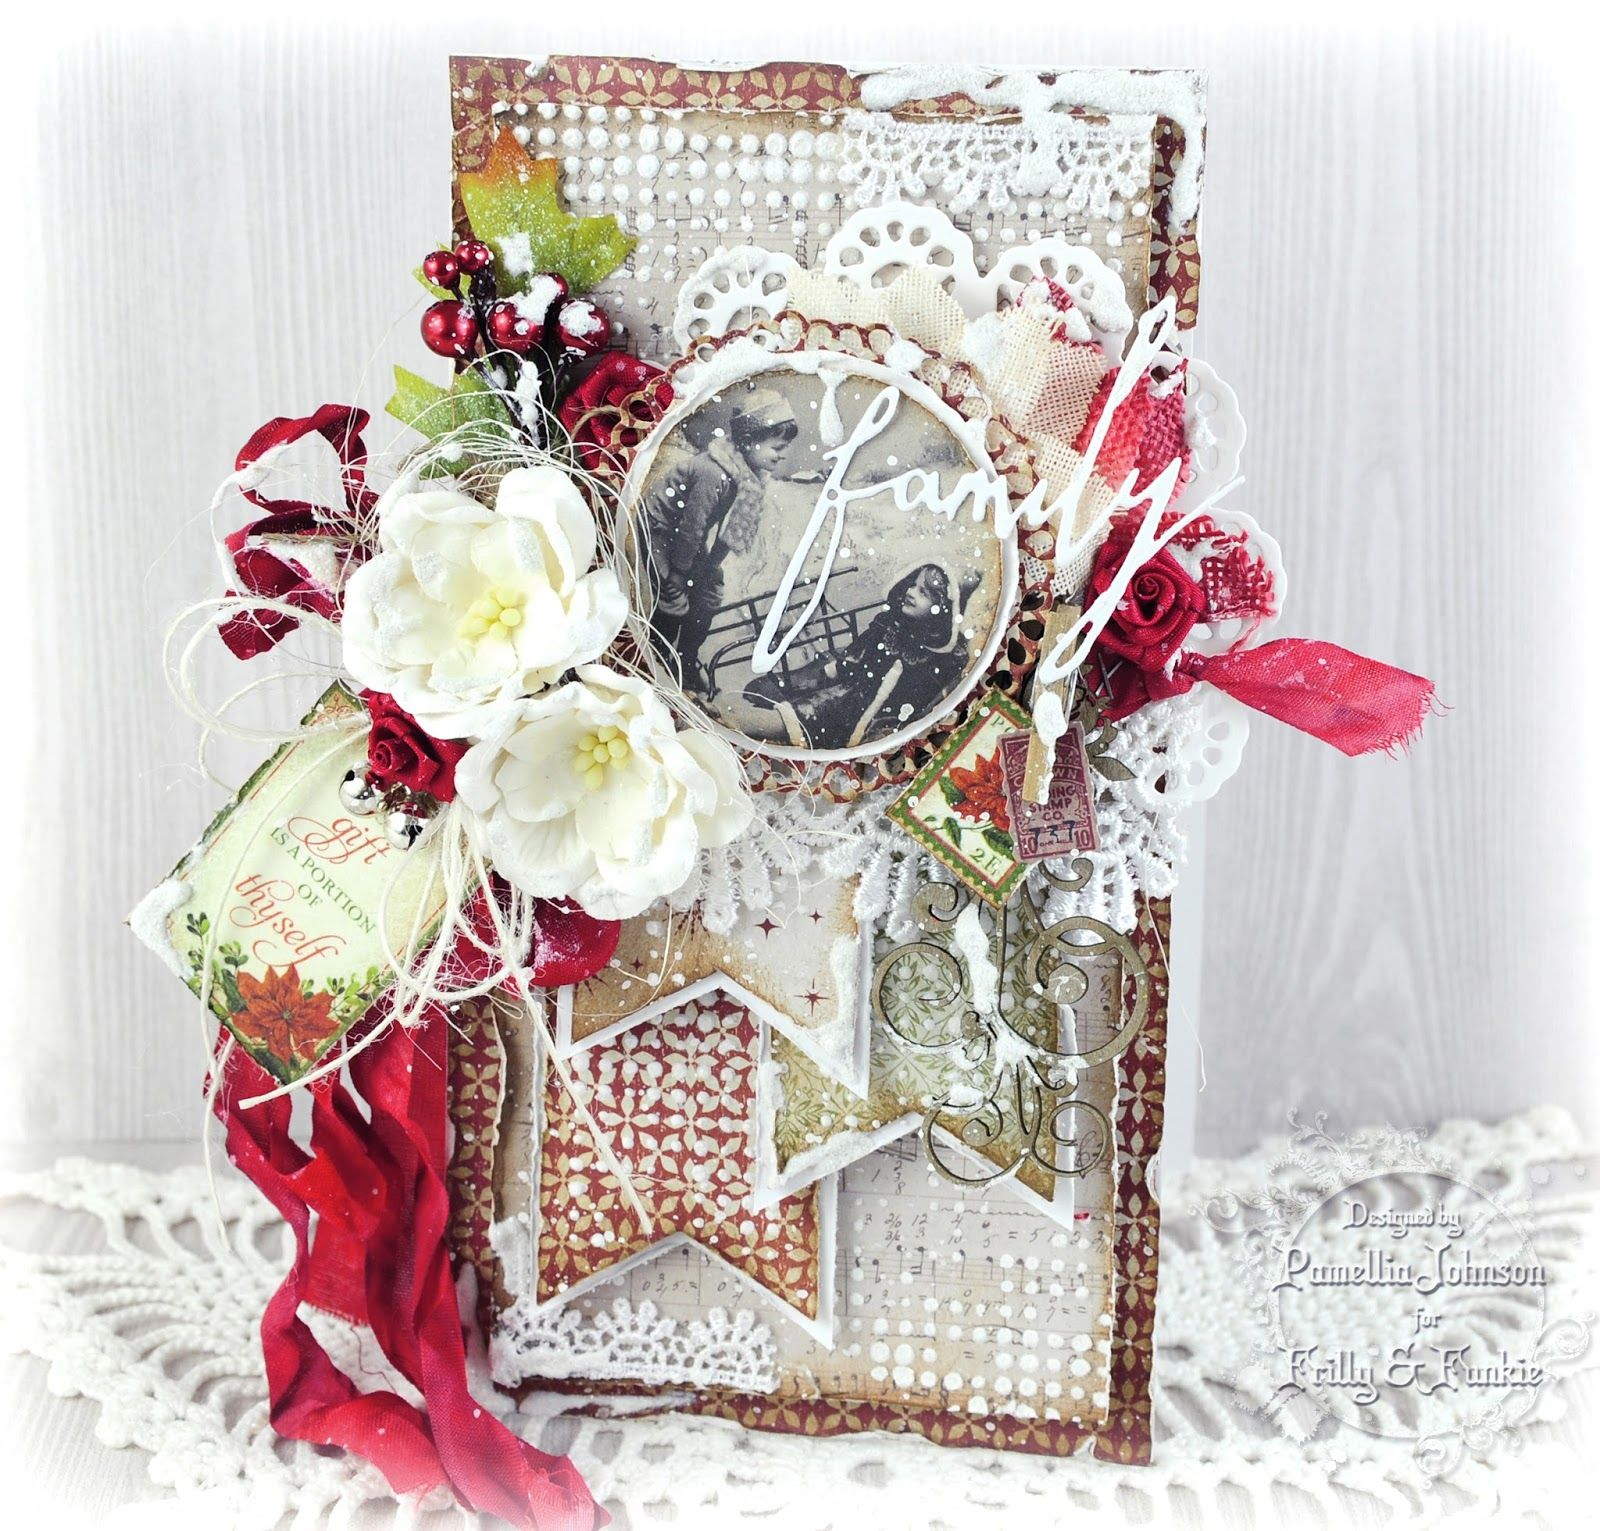 Pin by lezlie dick sherman on cardsfrilly and funkyshabby chic